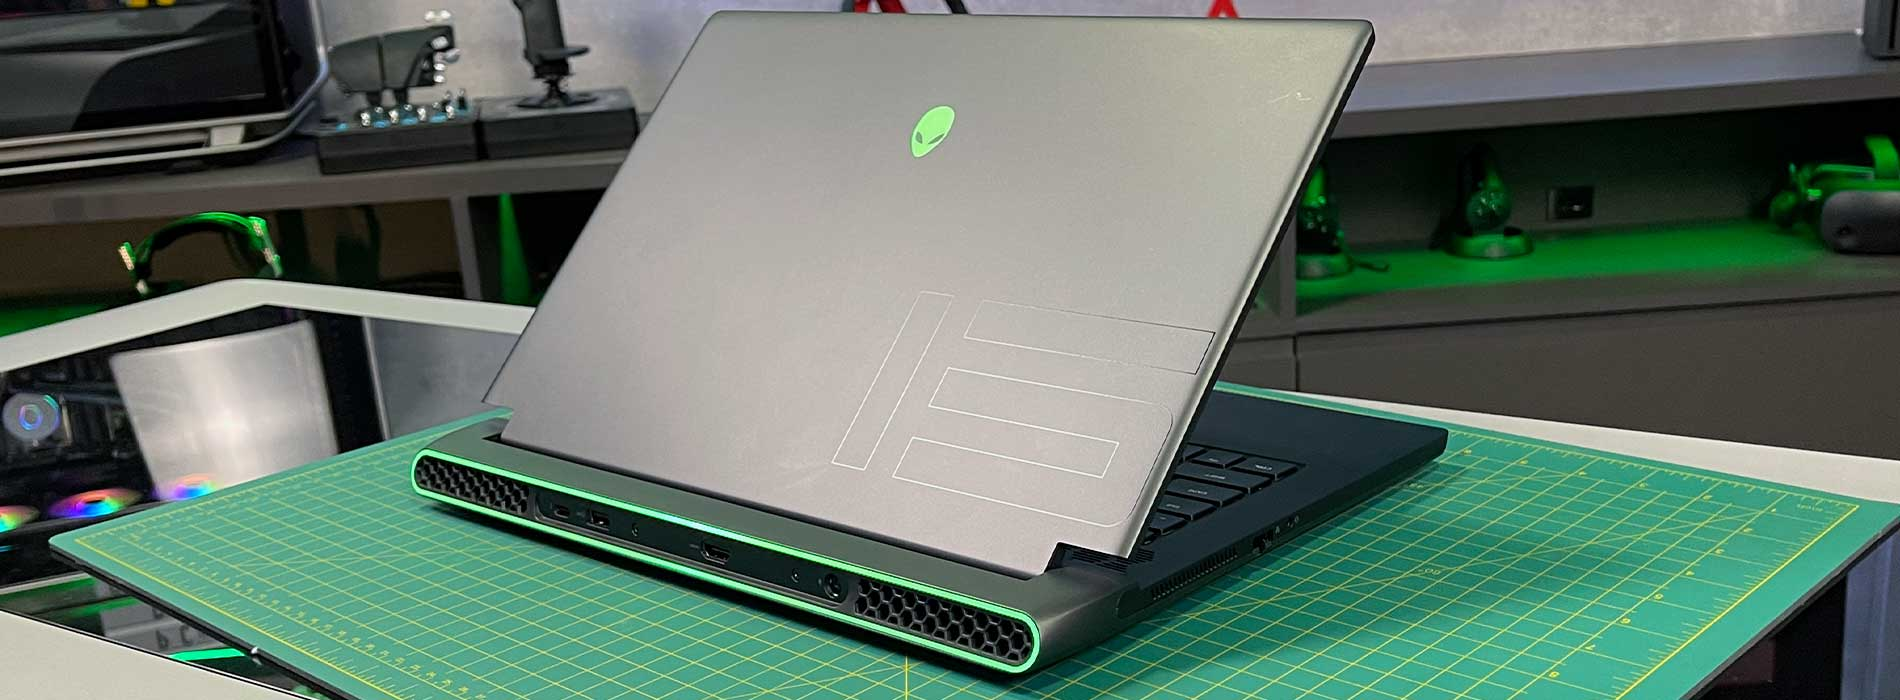 Analysis: Alienware M15 R6 - Straight to our highest standards